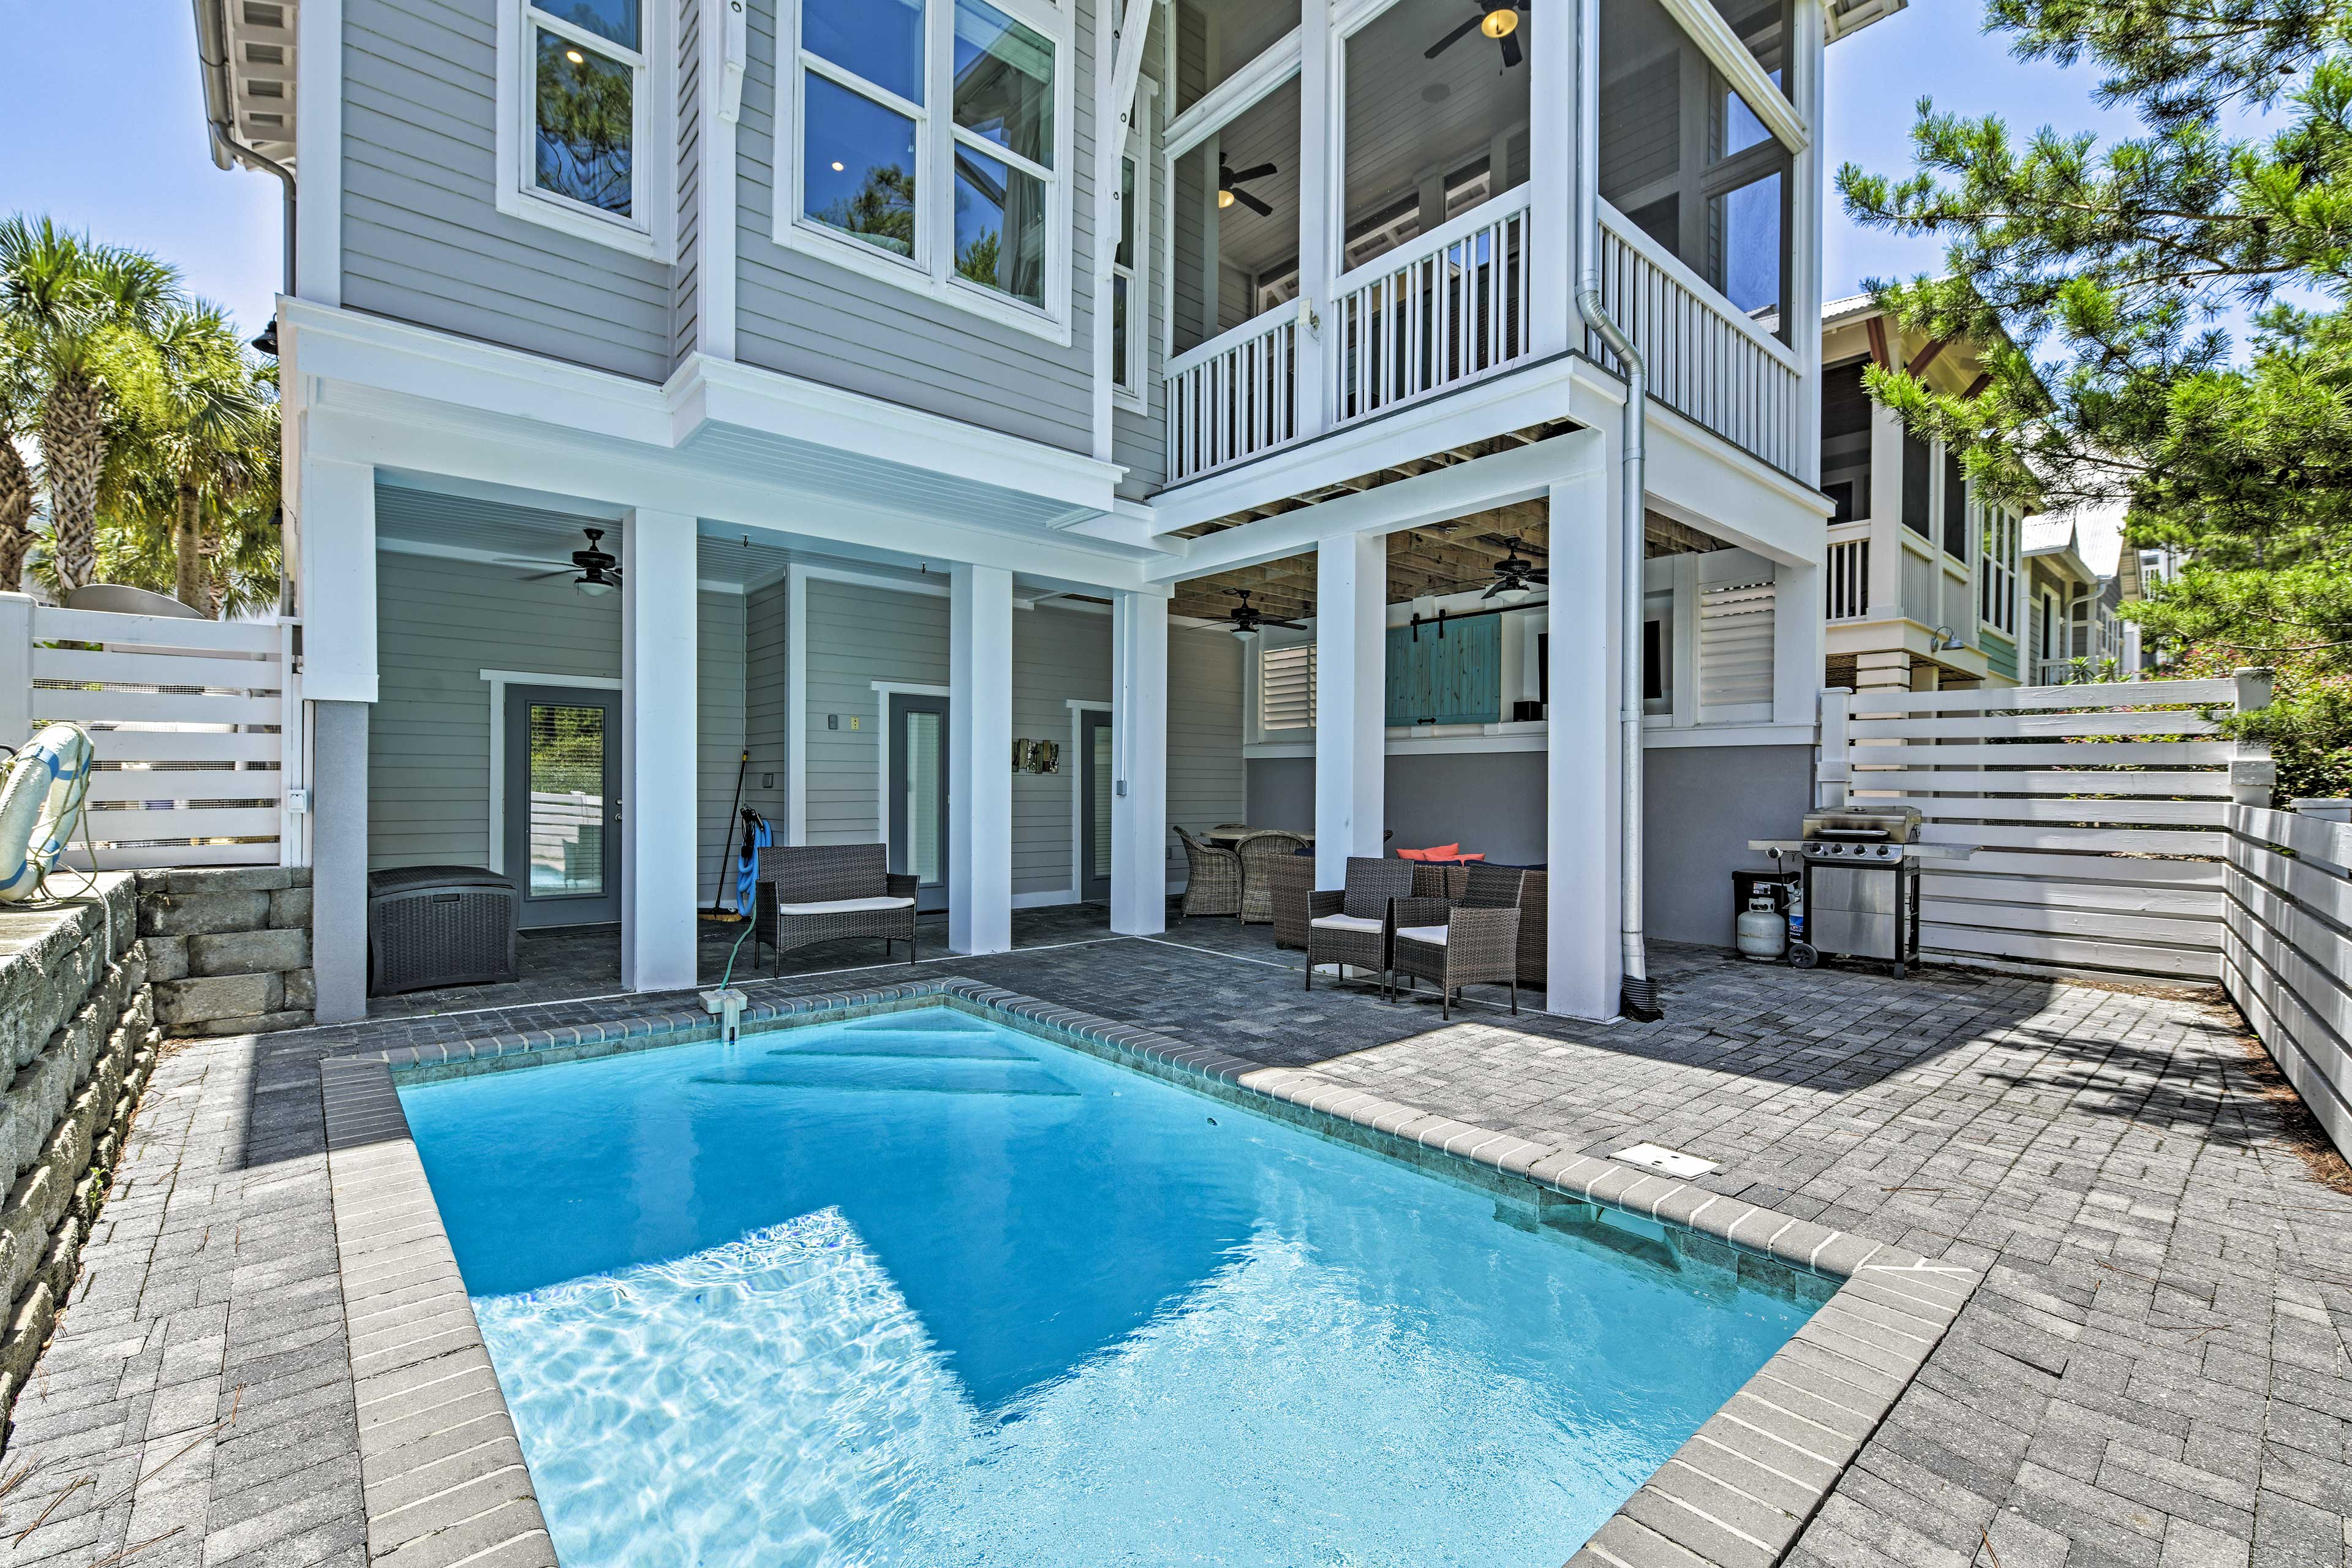 Spend afternoons lounging on the covered deck or splashing in the private pool!